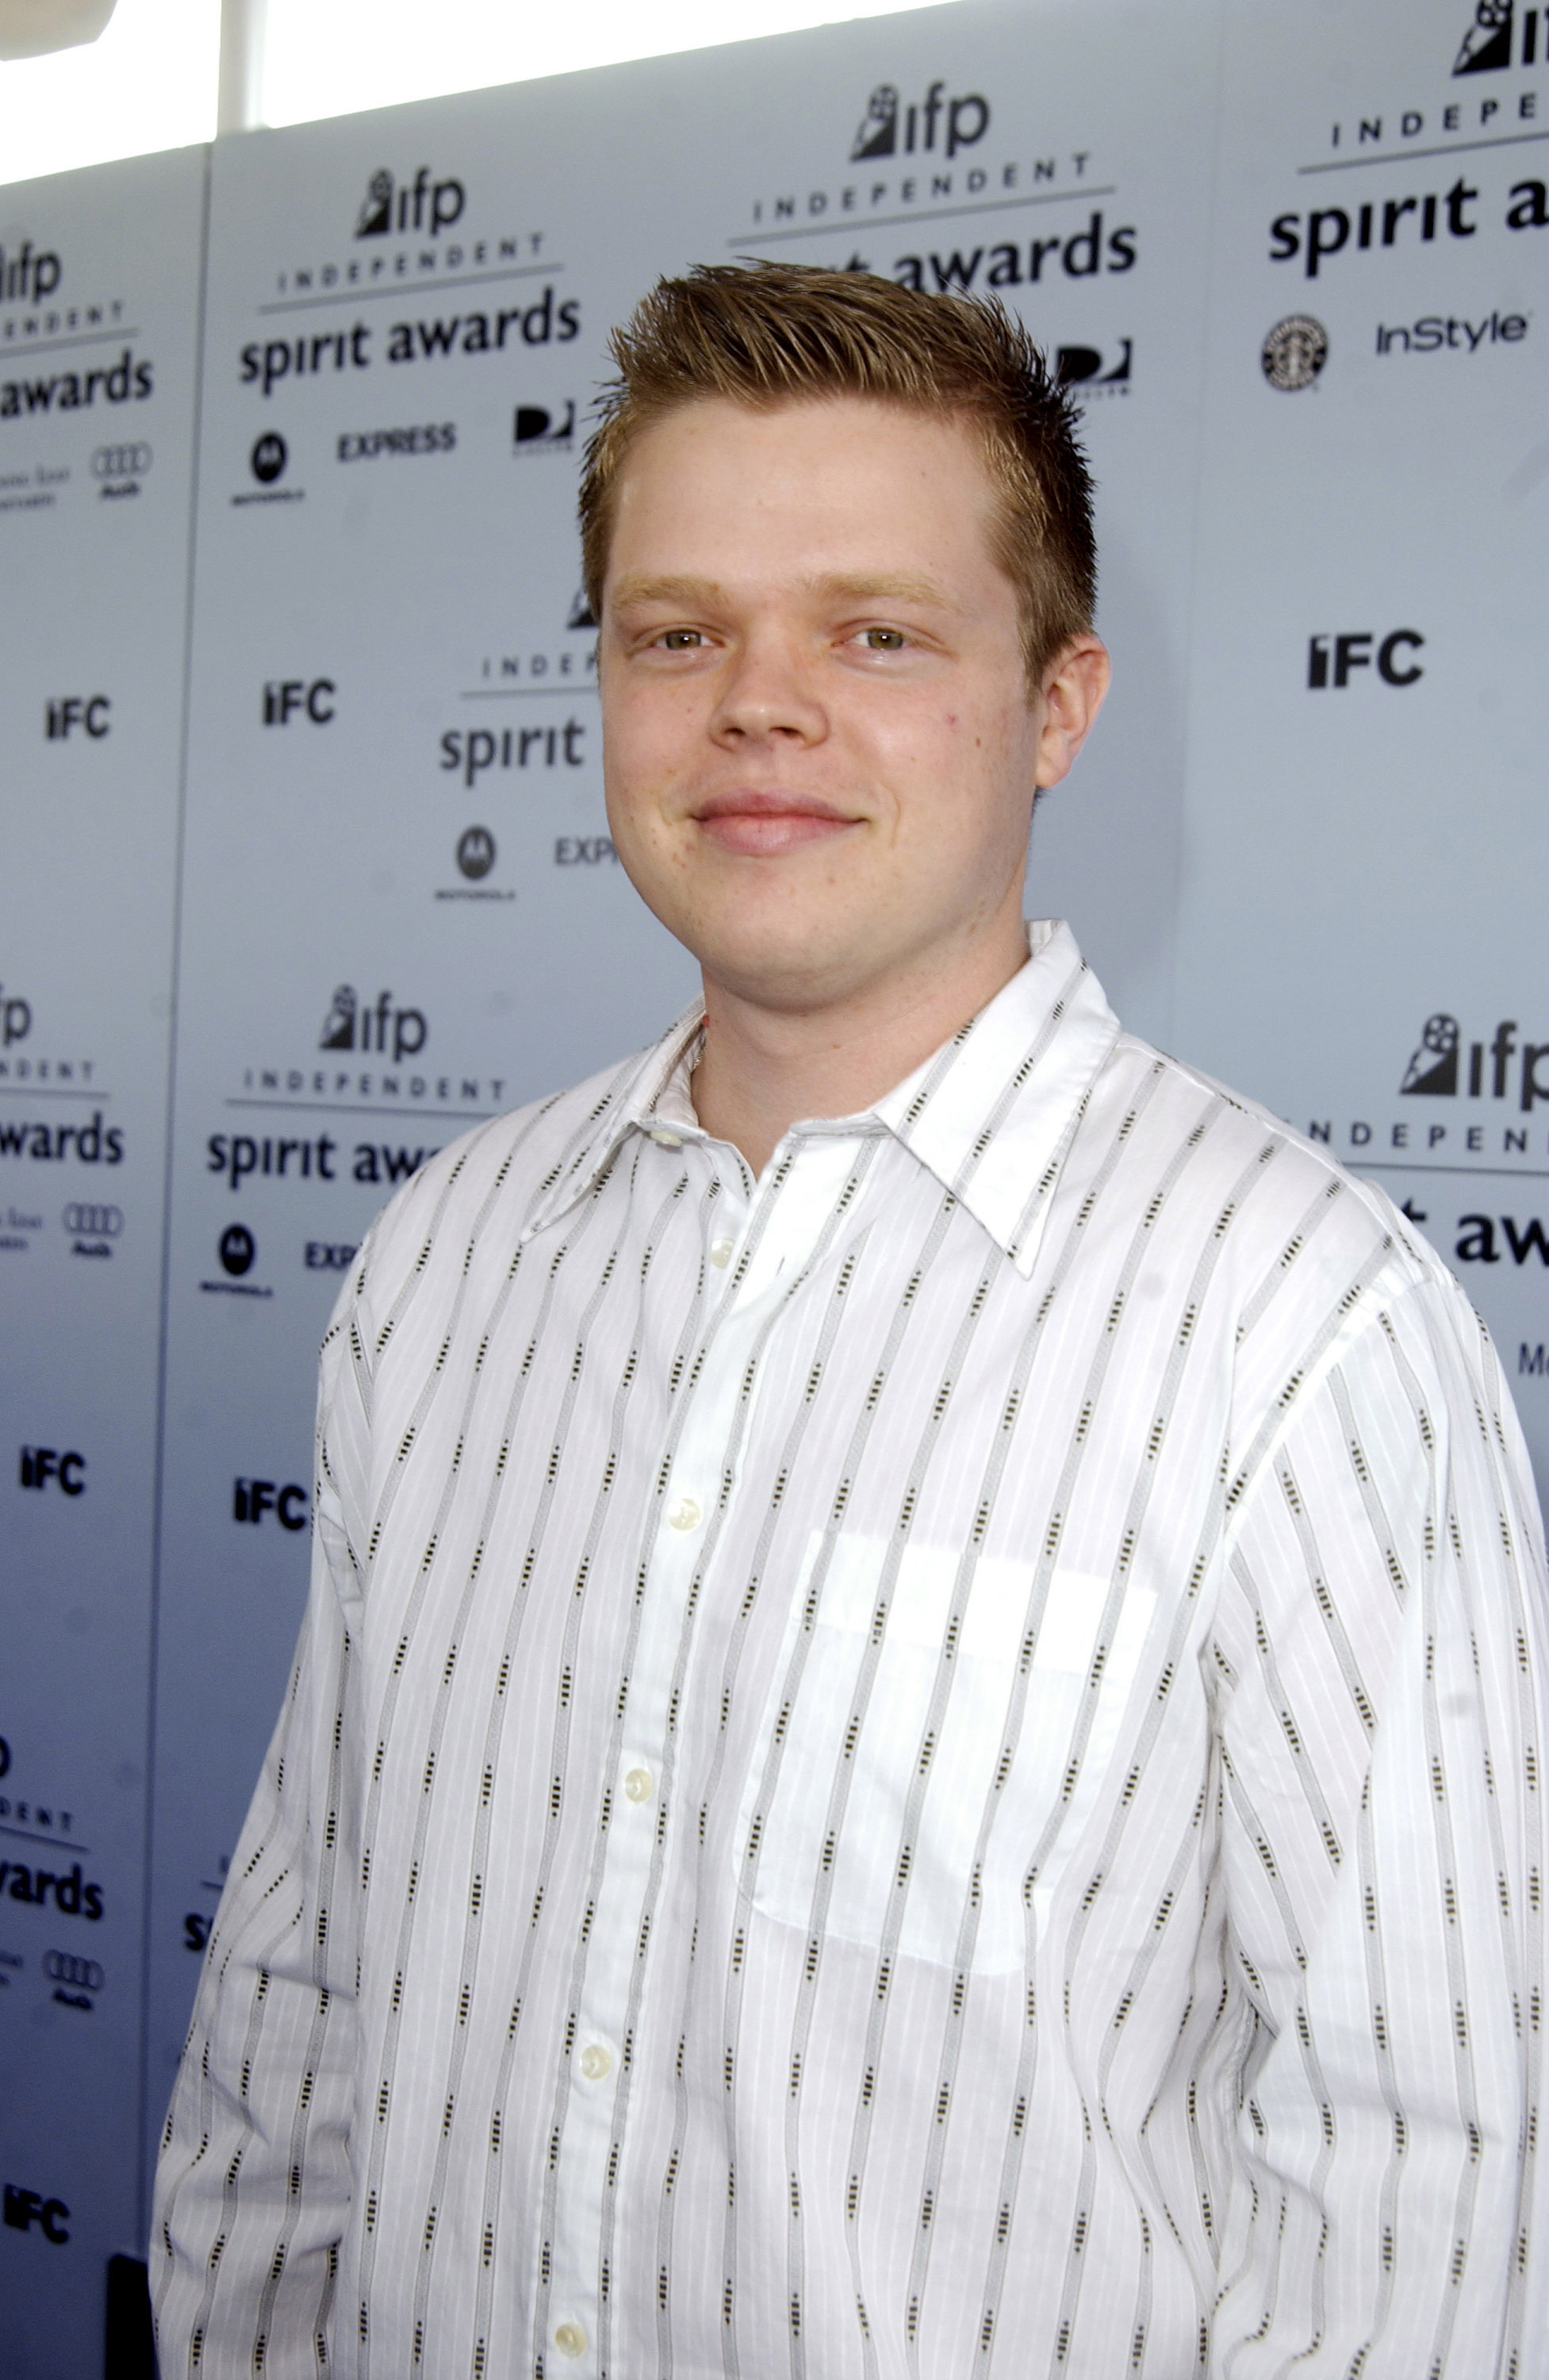 Eldon Henson during The 18th Annual IFP Independent Spirit Awards